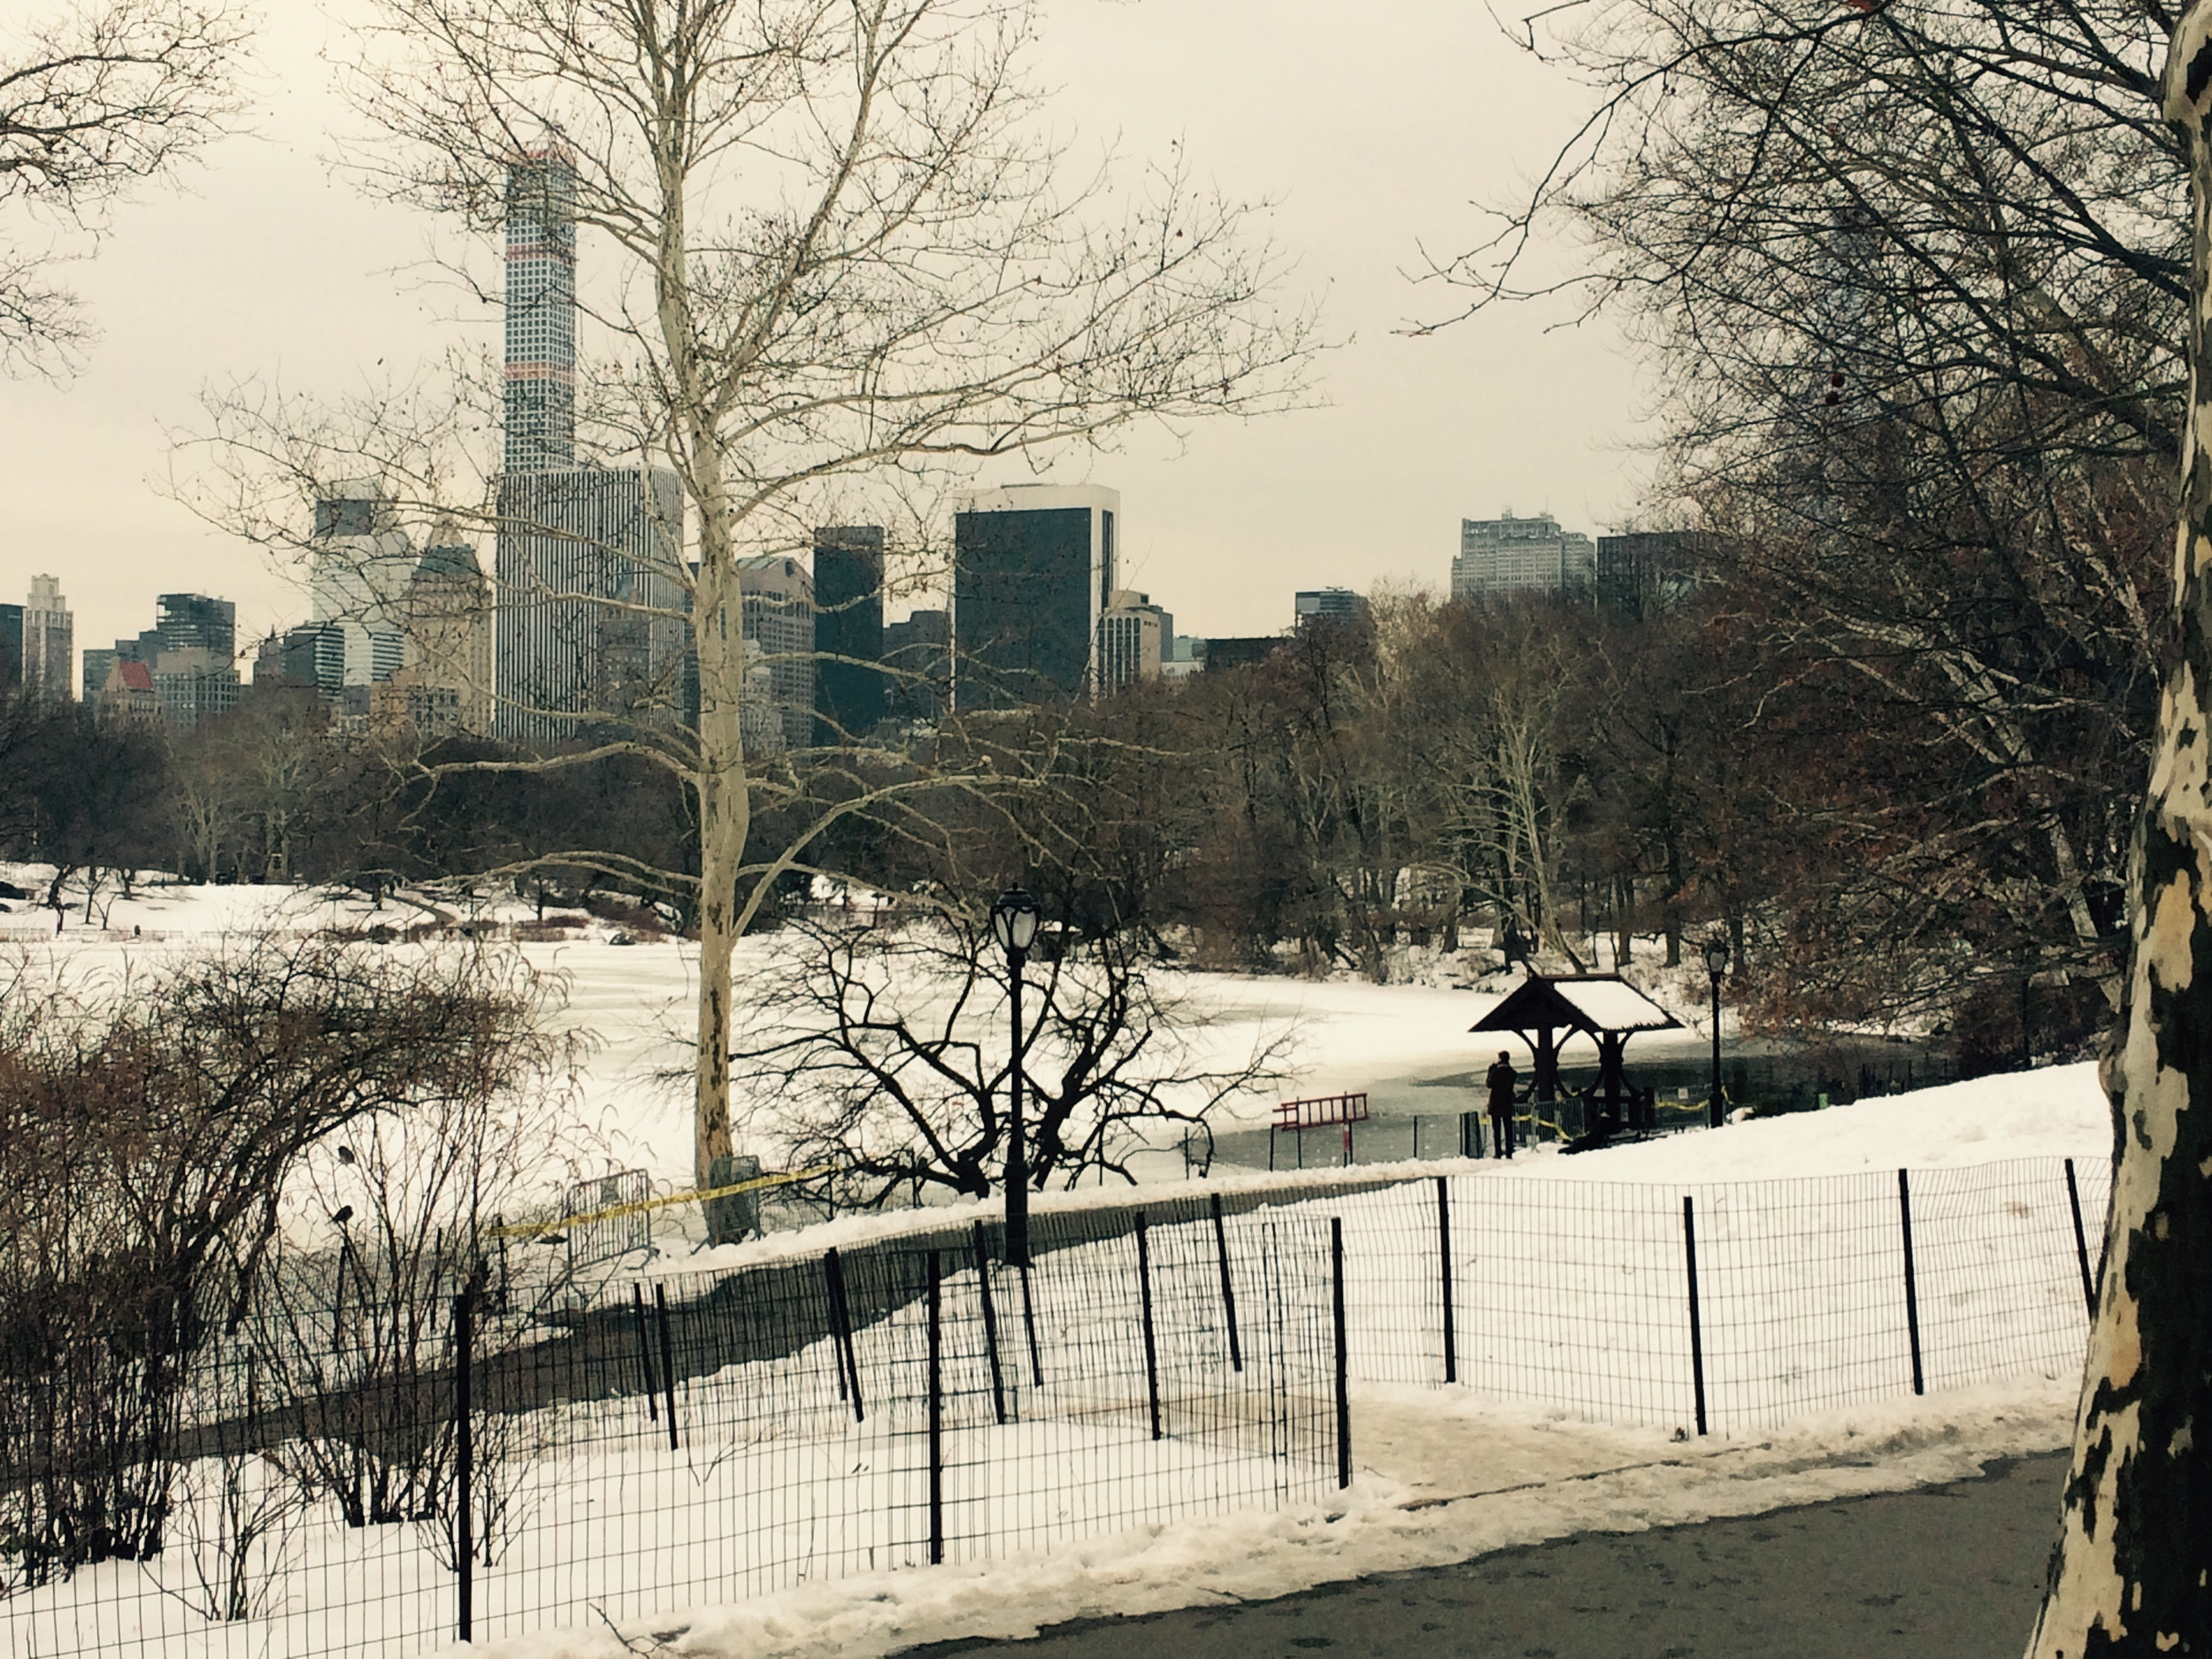 Snowy February 1st, Central Park, Manhattan, 2015